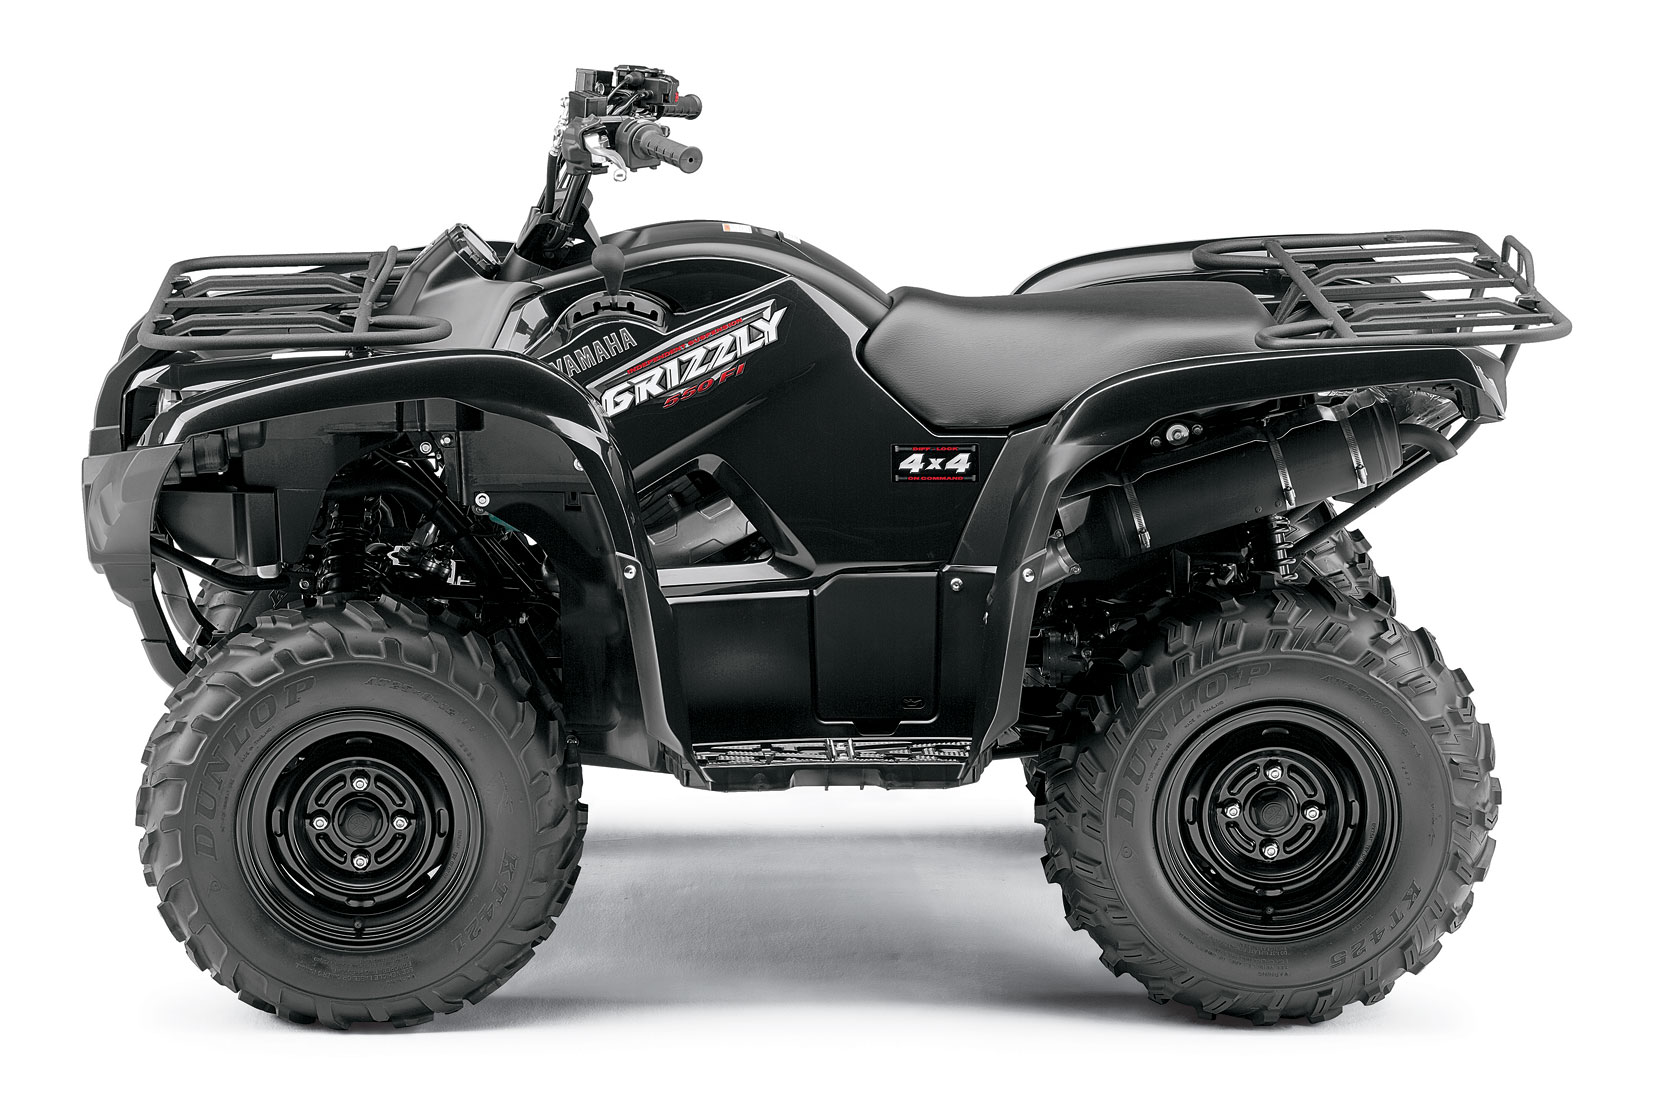 yamaha grizzly 550 fi specs 2008 2009 autoevolution. Black Bedroom Furniture Sets. Home Design Ideas